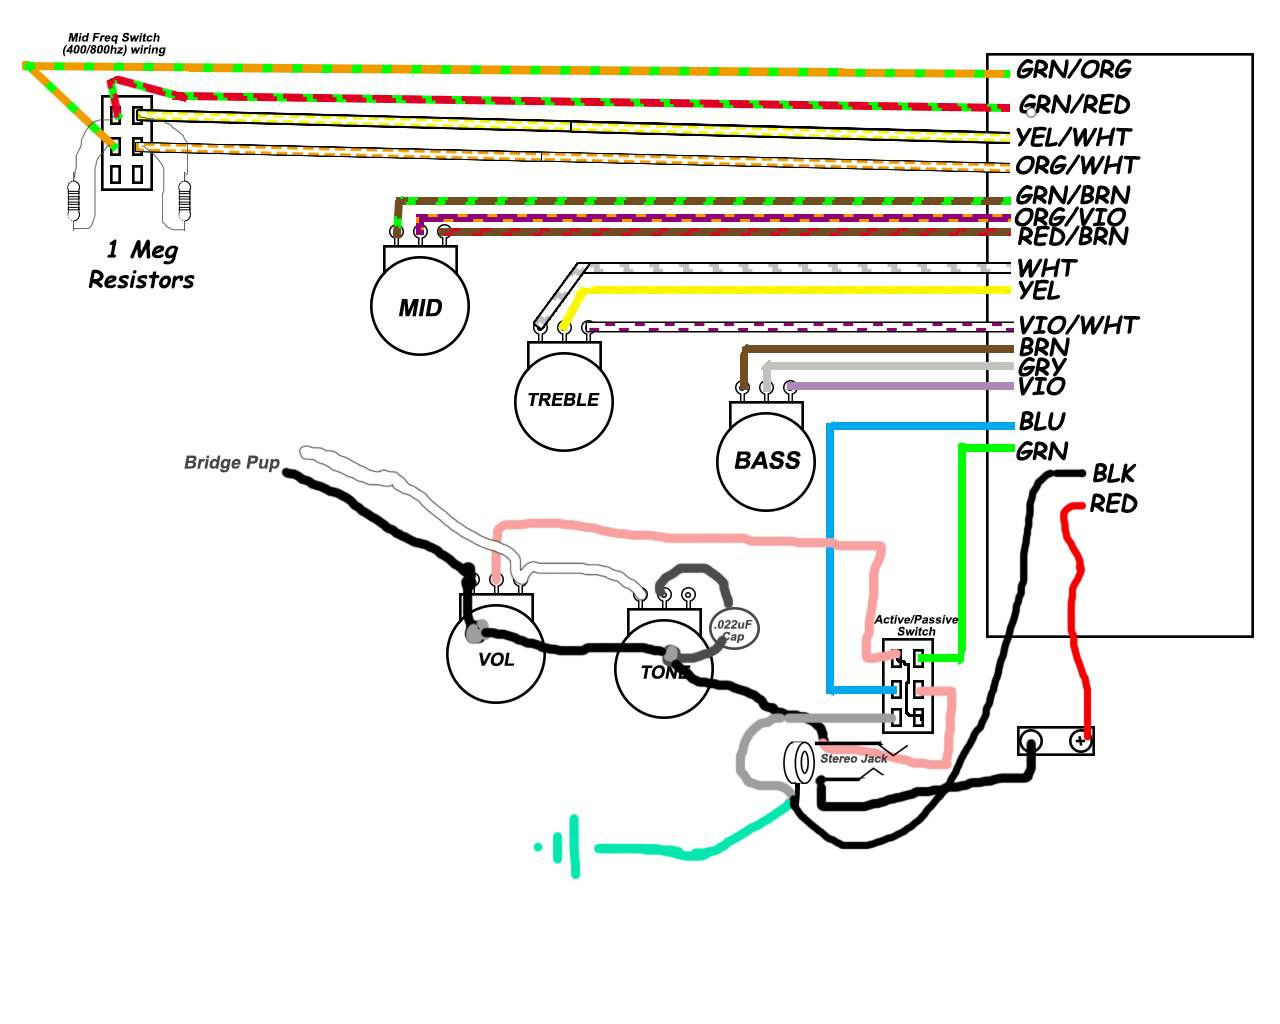 fender blacktop stratocaster wiring diagram wiring diagram and fender blacktop jazzmaster wiring diagram diagrams